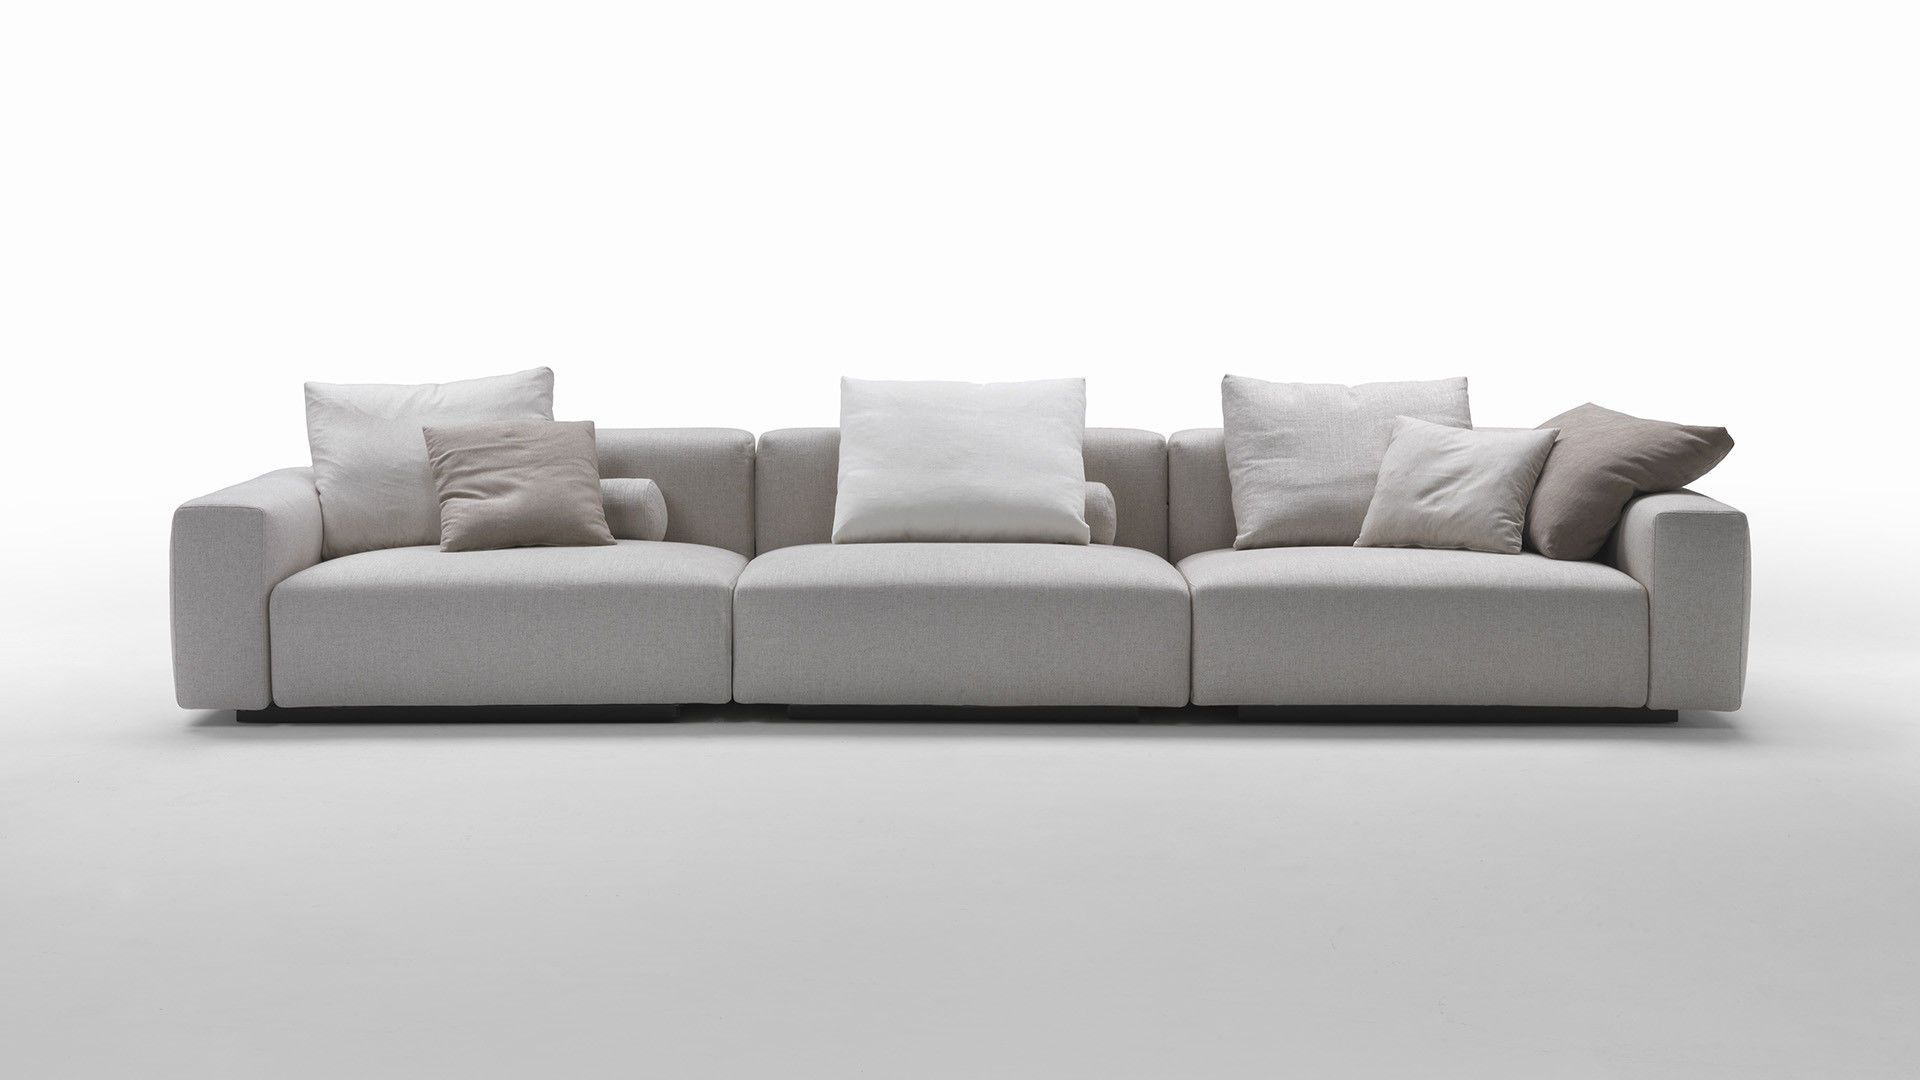 Wonderful Discover All The Information About The Product Modular Sofa / Contemporary  / Leather / Fabric LARIO